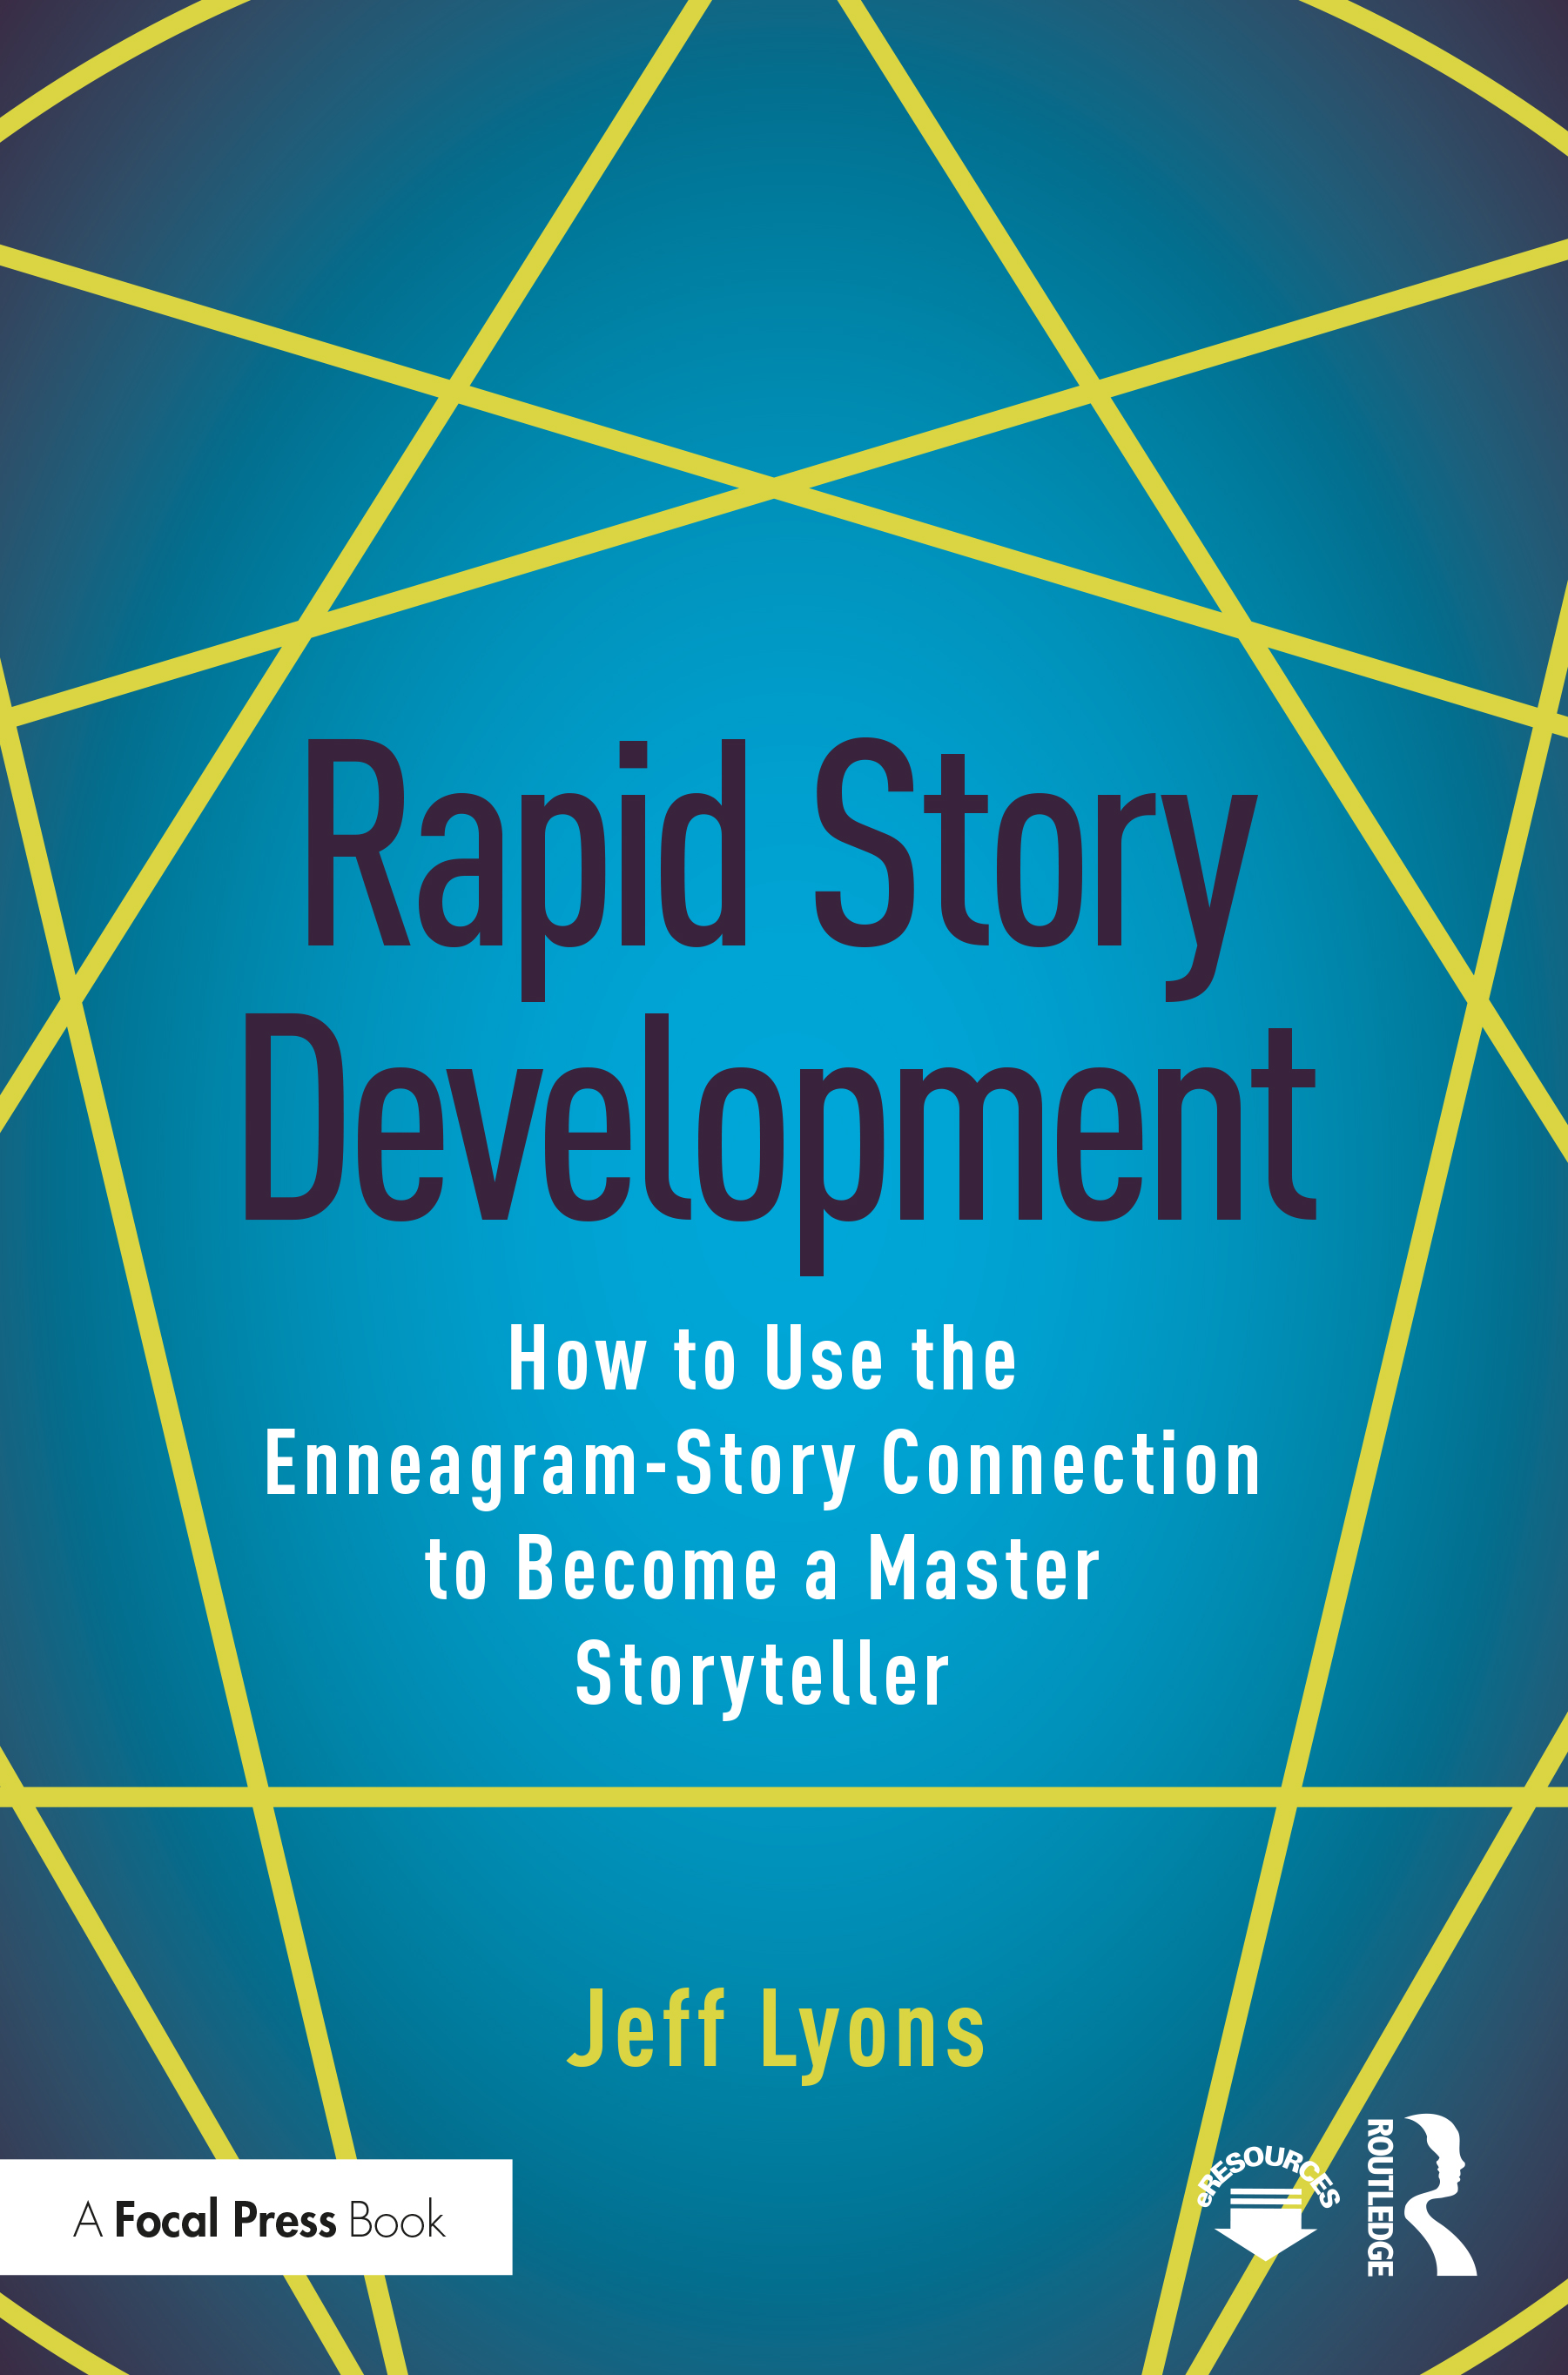 Rapid Story Development: How to Use the Enneagram-Story Connection to Become a Master Storyteller book cover